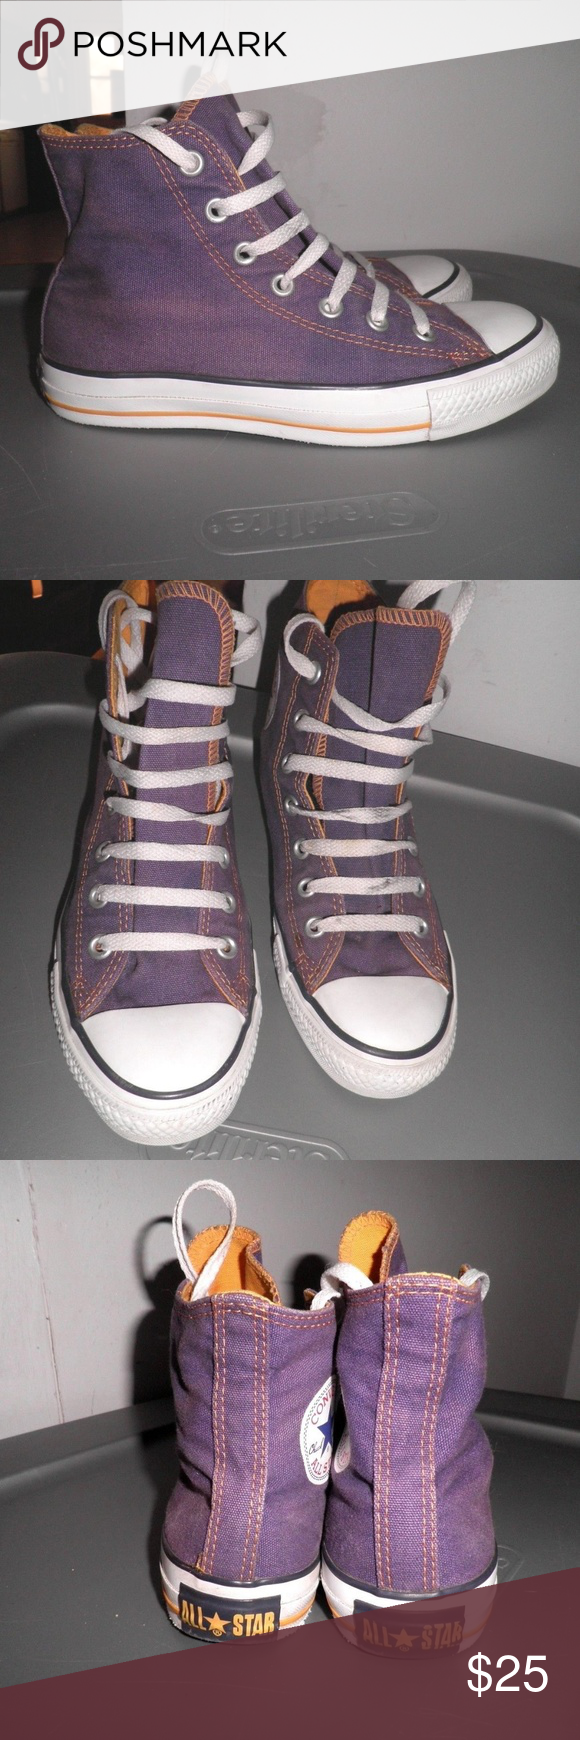 fc5ac3aa327c61 Converse Laker Purple with Yellow Stitching Perfect for your youth Laker  fan! Chuck Taylor high